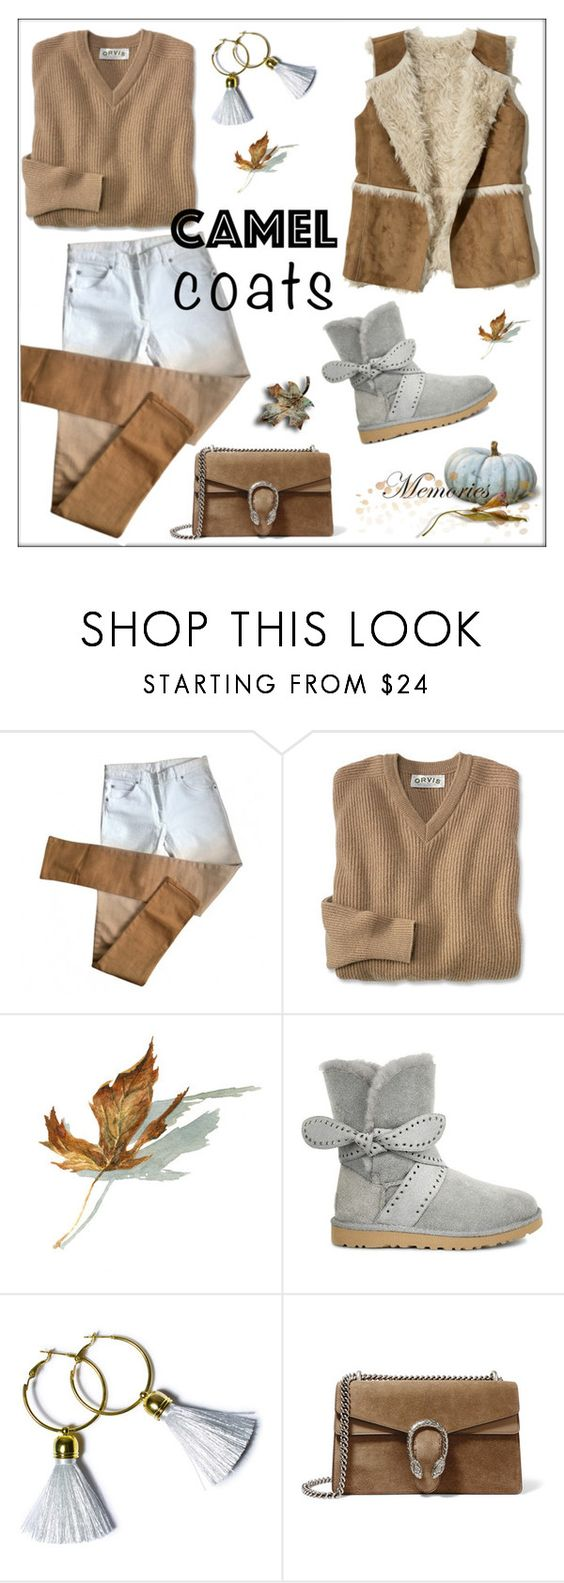 """Camel Coats"" by pat912 ❤ liked on Polyvore featuring Maison Margiela, UGG, Suzywan DELUXE, Gucci and Hollister Co."